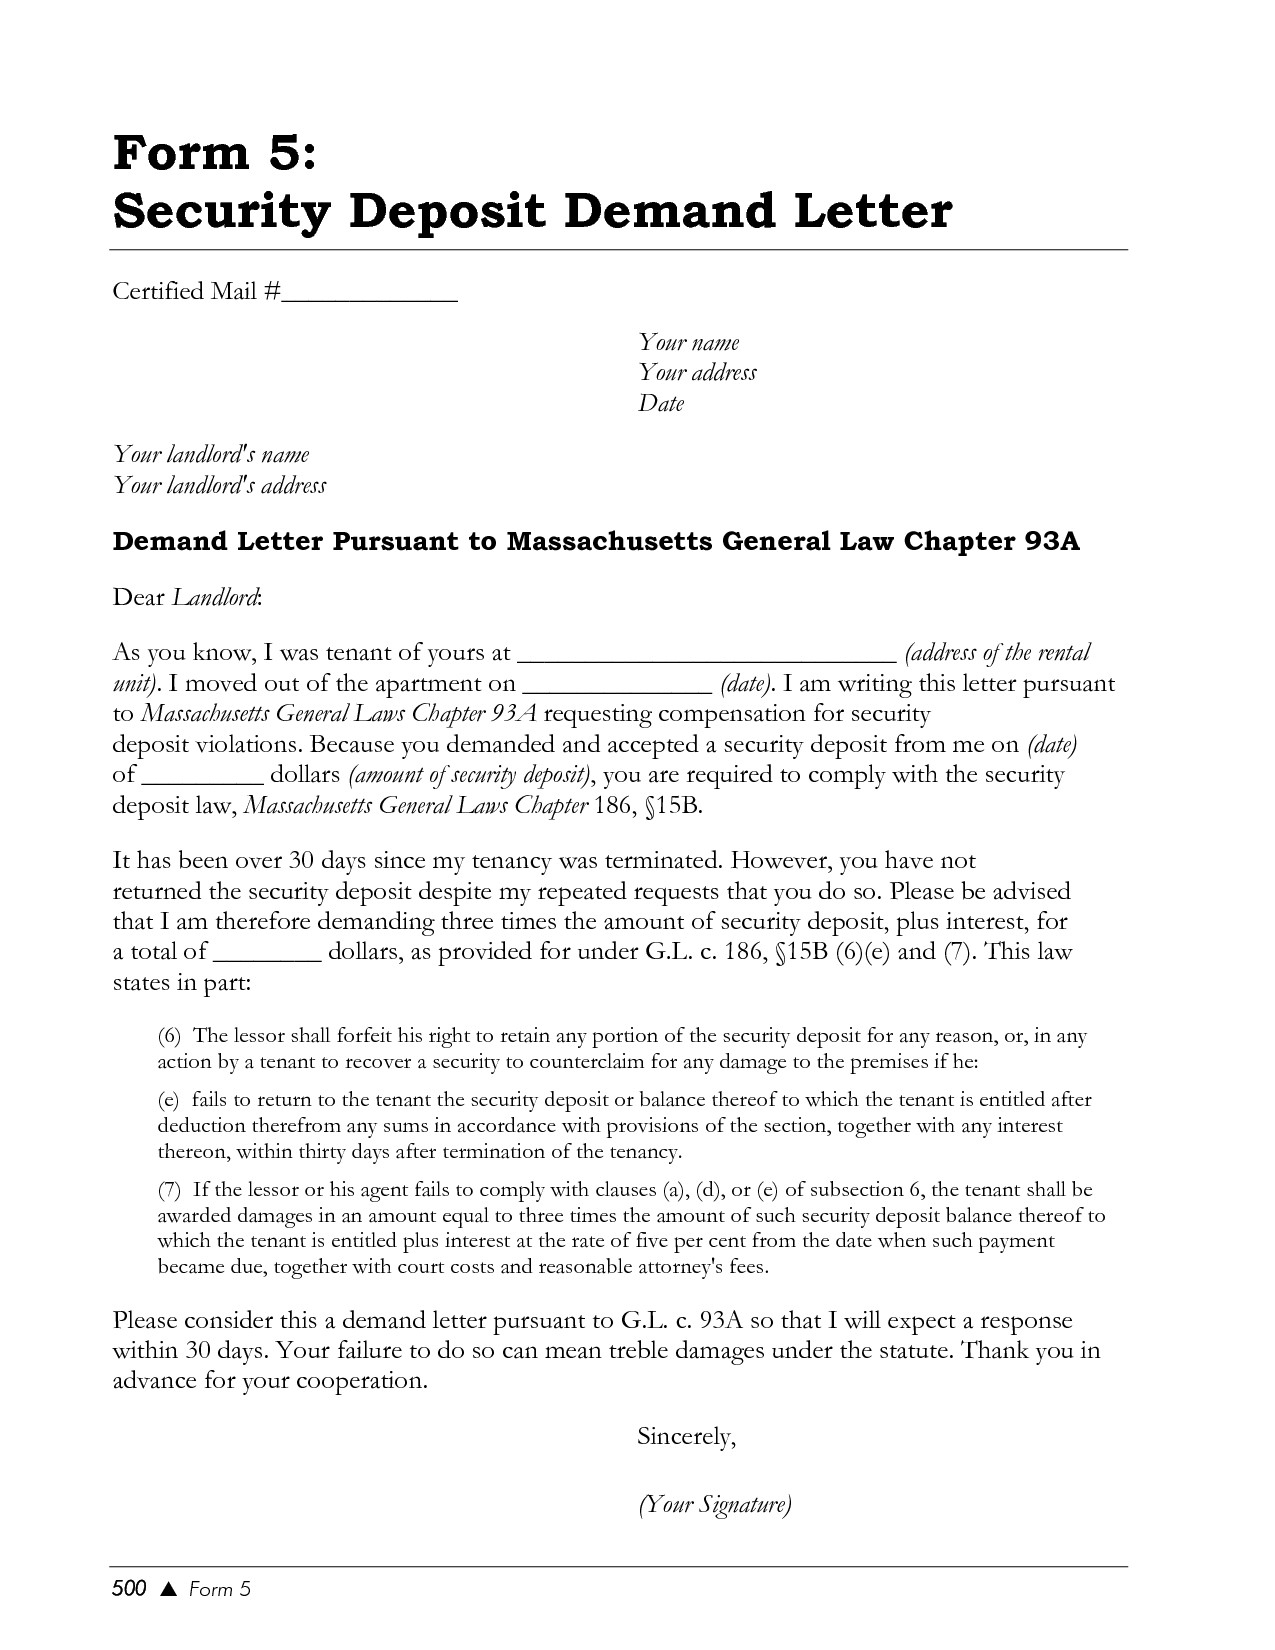 demand letter to landlord template Collection-Landlord letter returning security deposit sample demand elemental yet 11-d